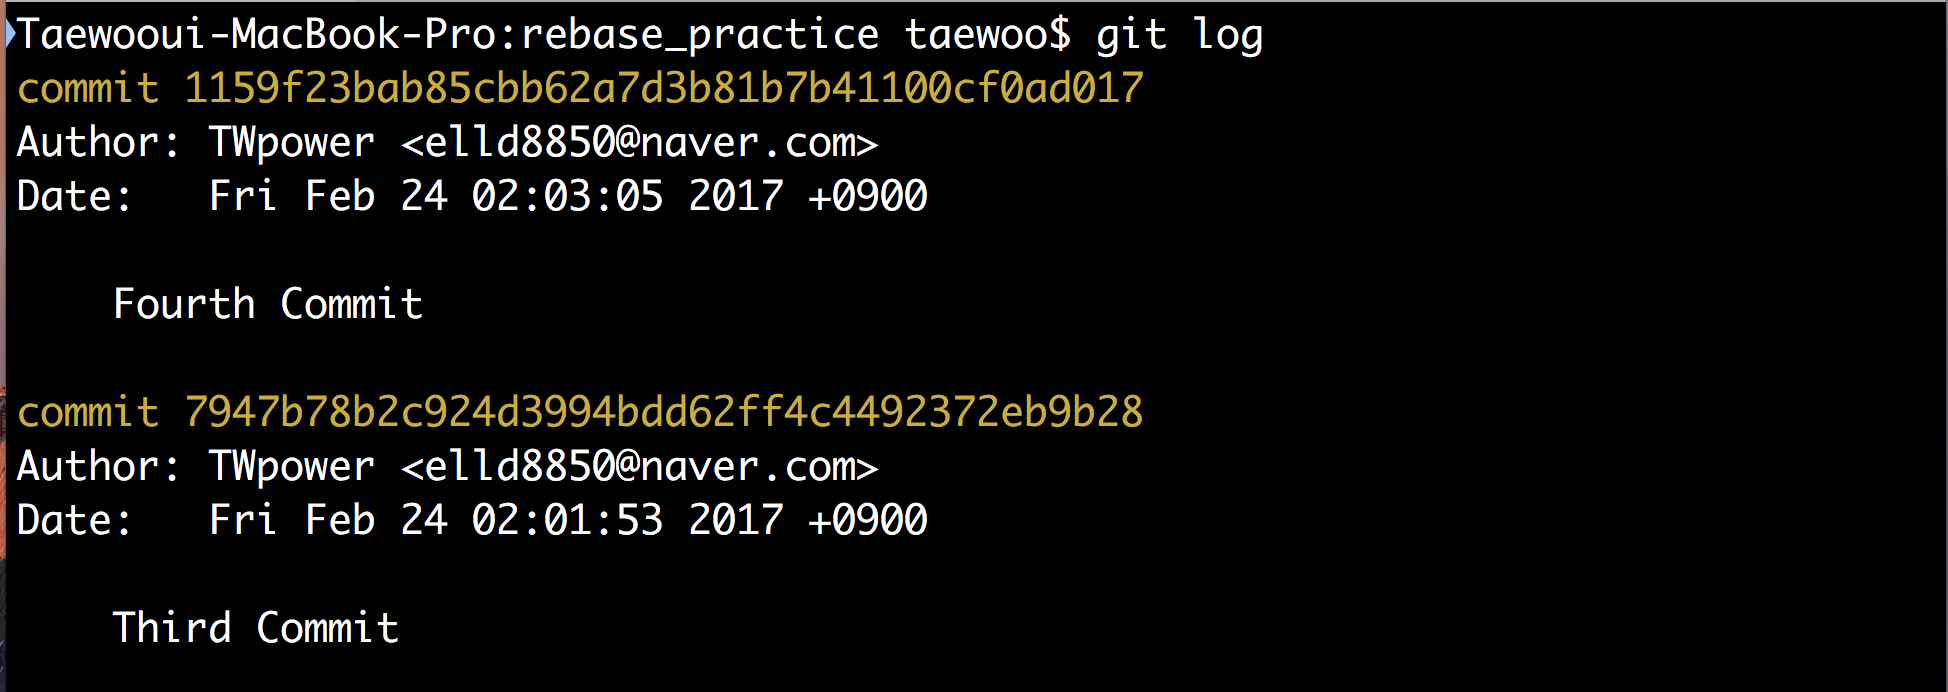 Git Log Result